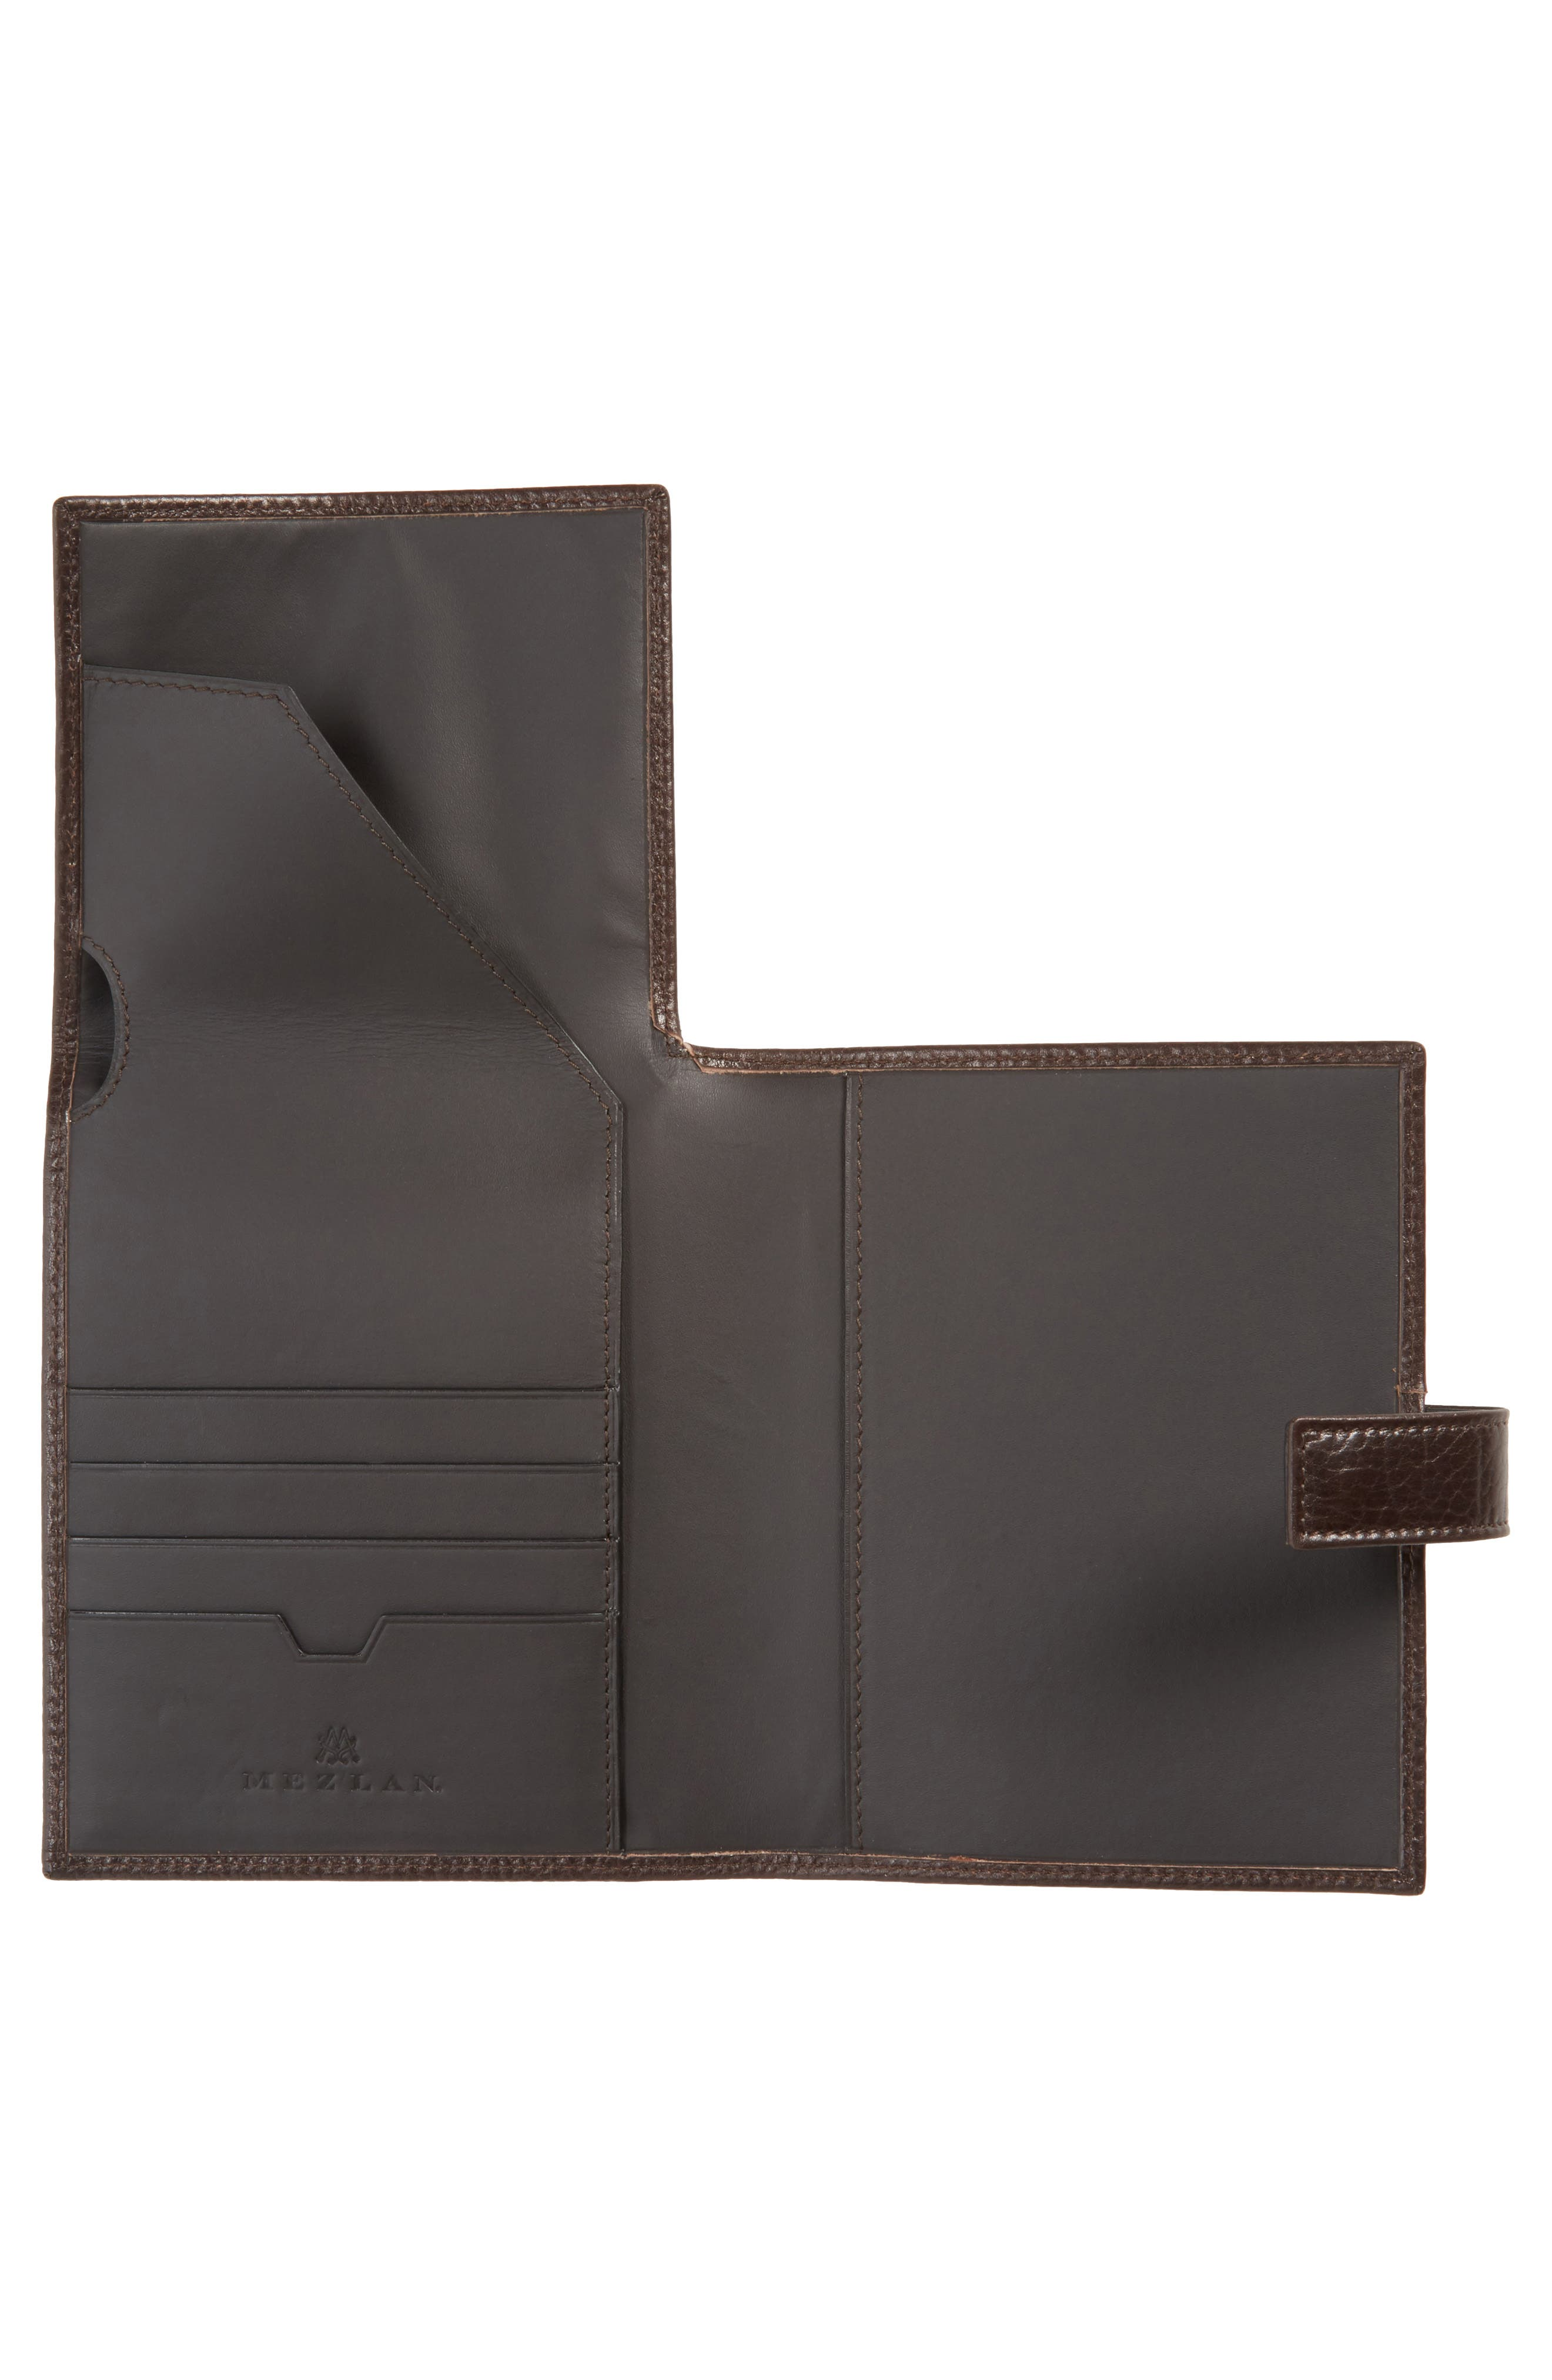 Perseo Leather Travel Wallet,                             Alternate thumbnail 2, color,                             Brown